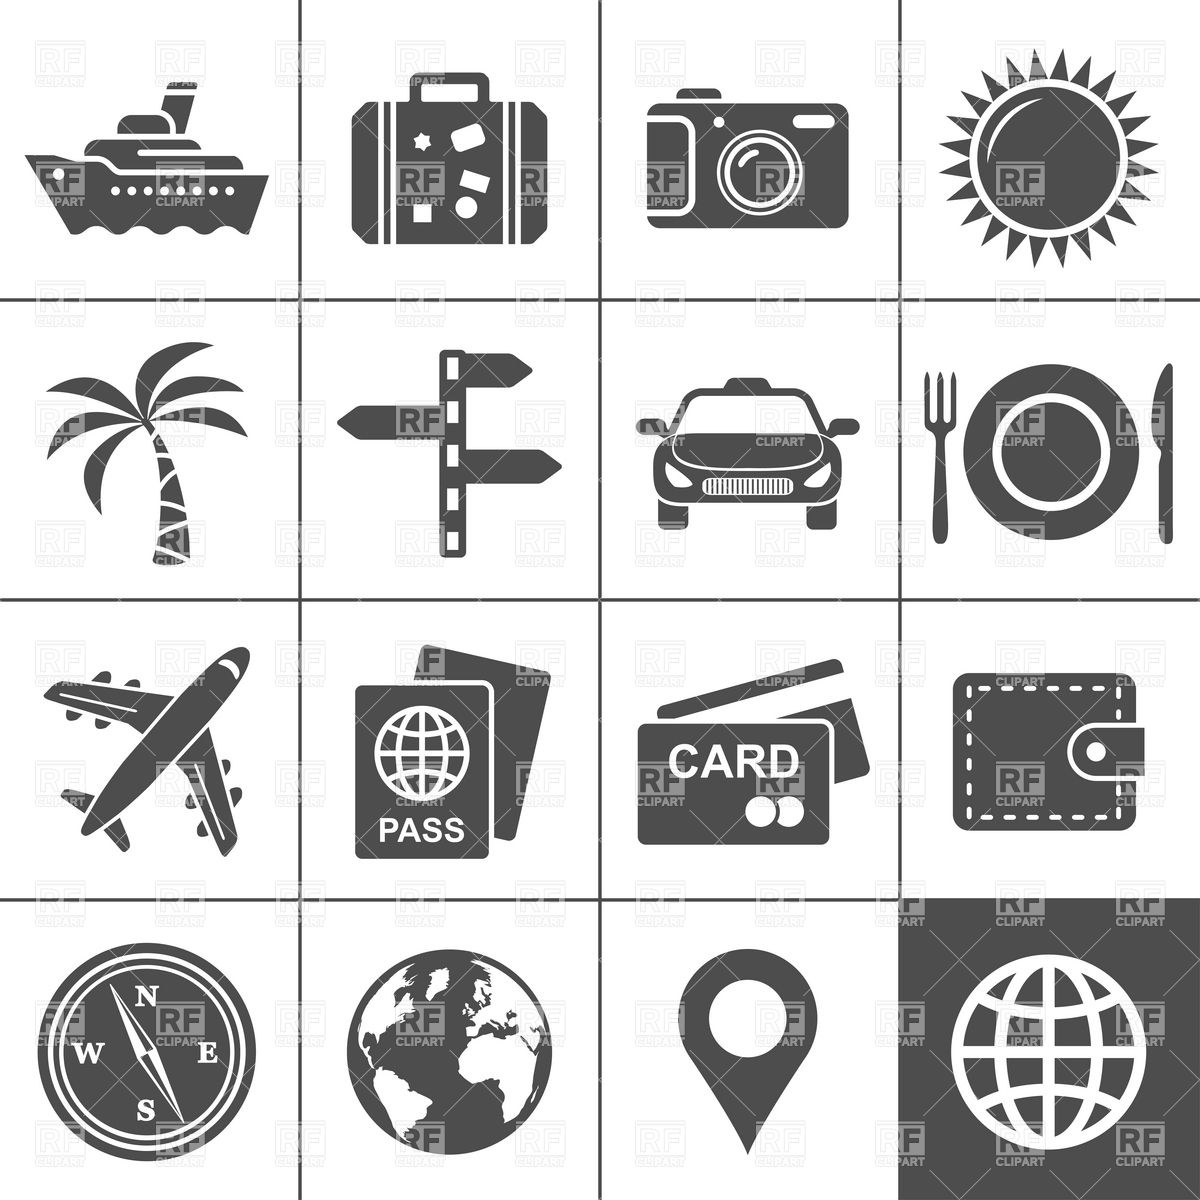 Free Clip Art Travel Icons